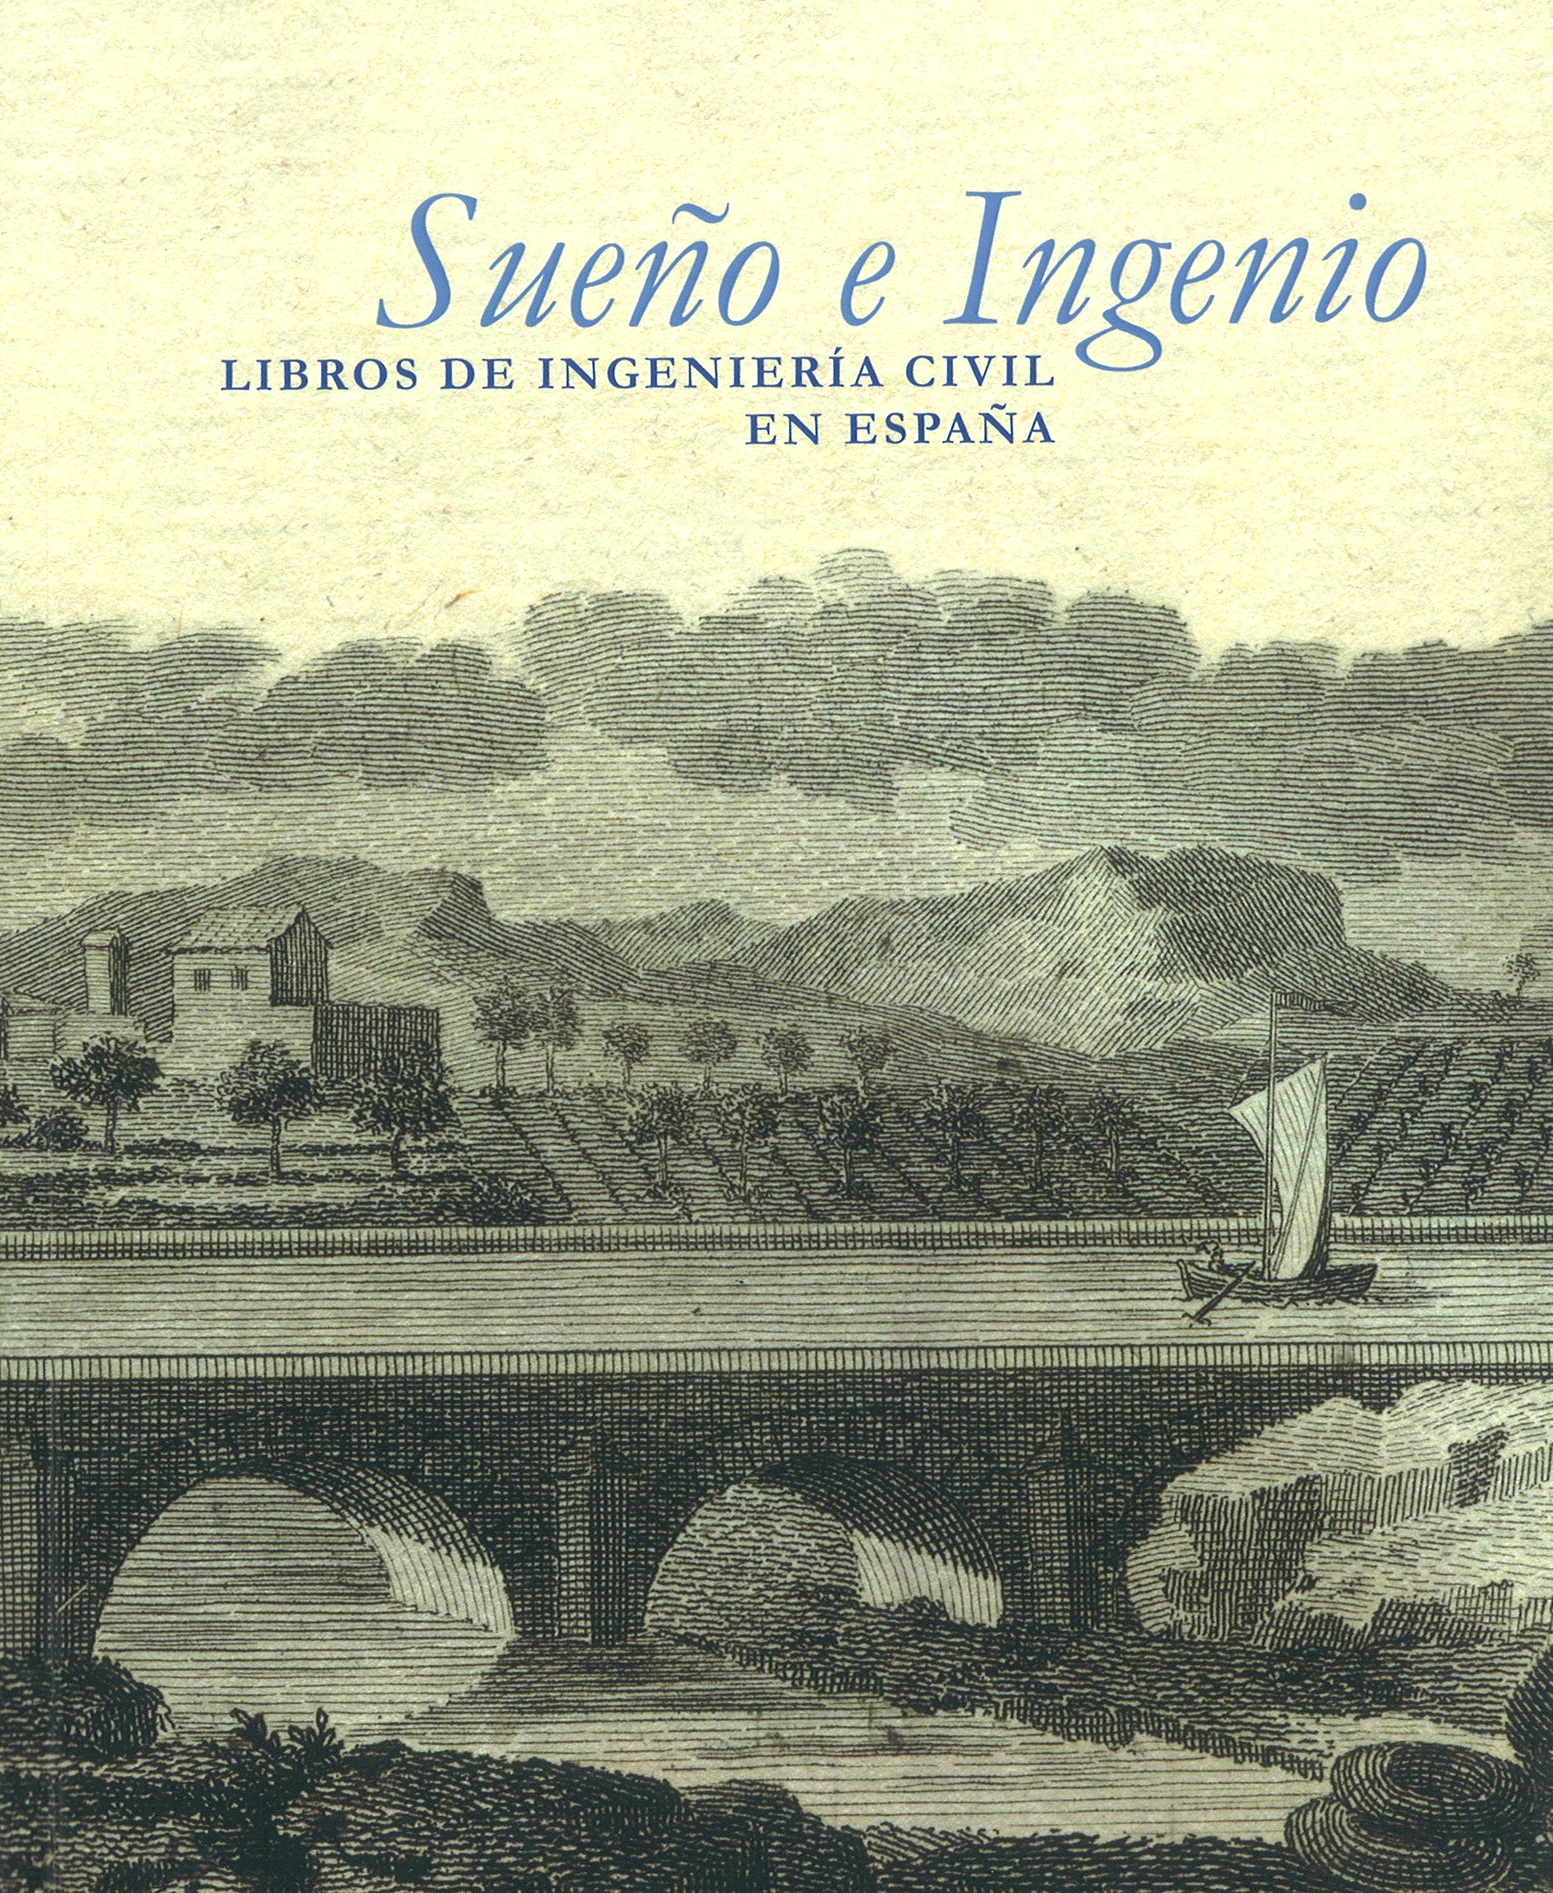 Sueño e Ingenio [Dreams and ingenuity]. Exhibition temporarily closed to the public. Catalogue online